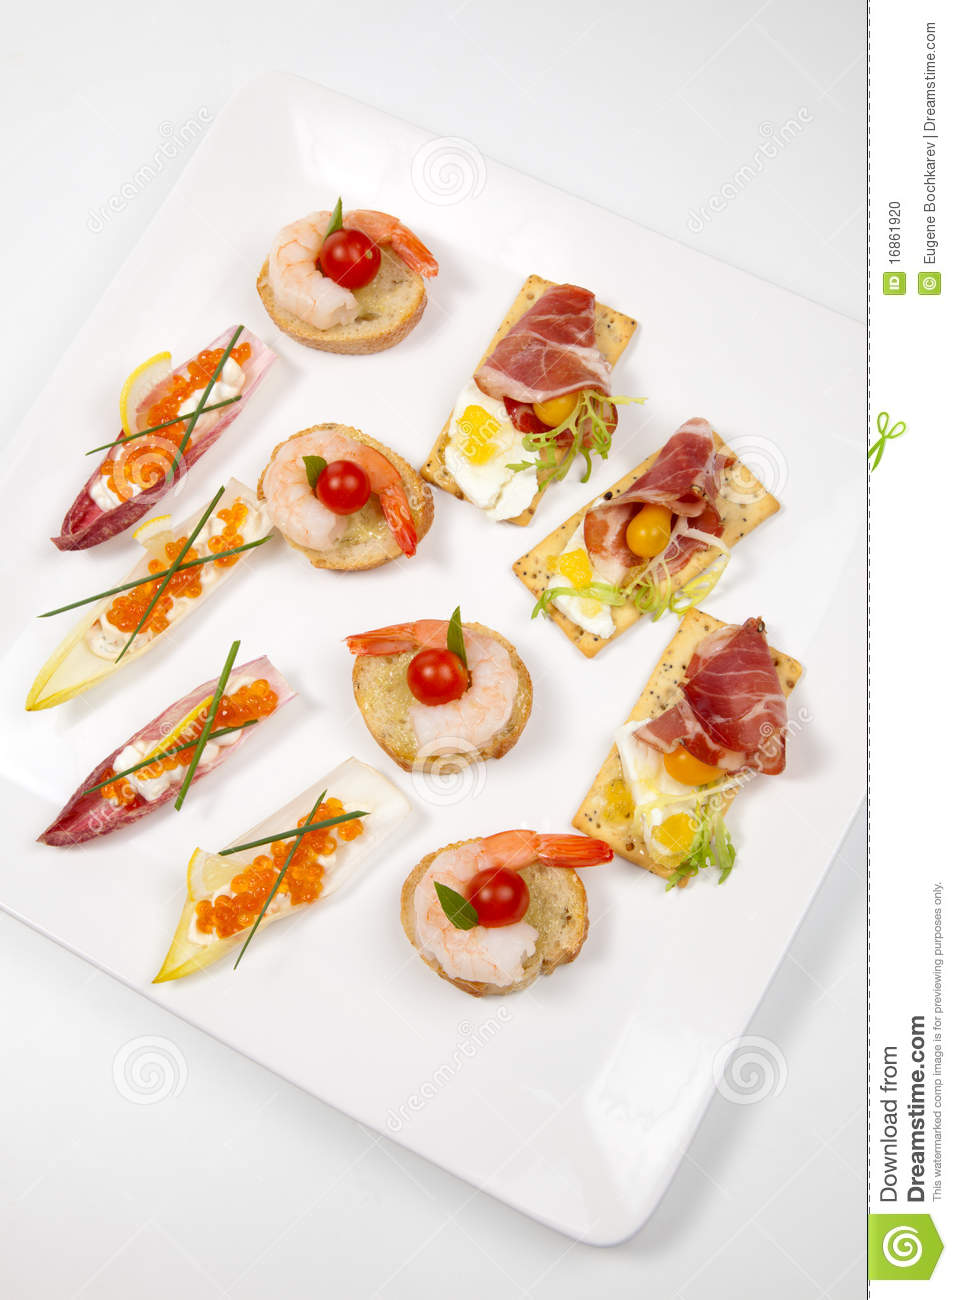 assorted canapes on tray stock photo image of delicious 16861920. Black Bedroom Furniture Sets. Home Design Ideas